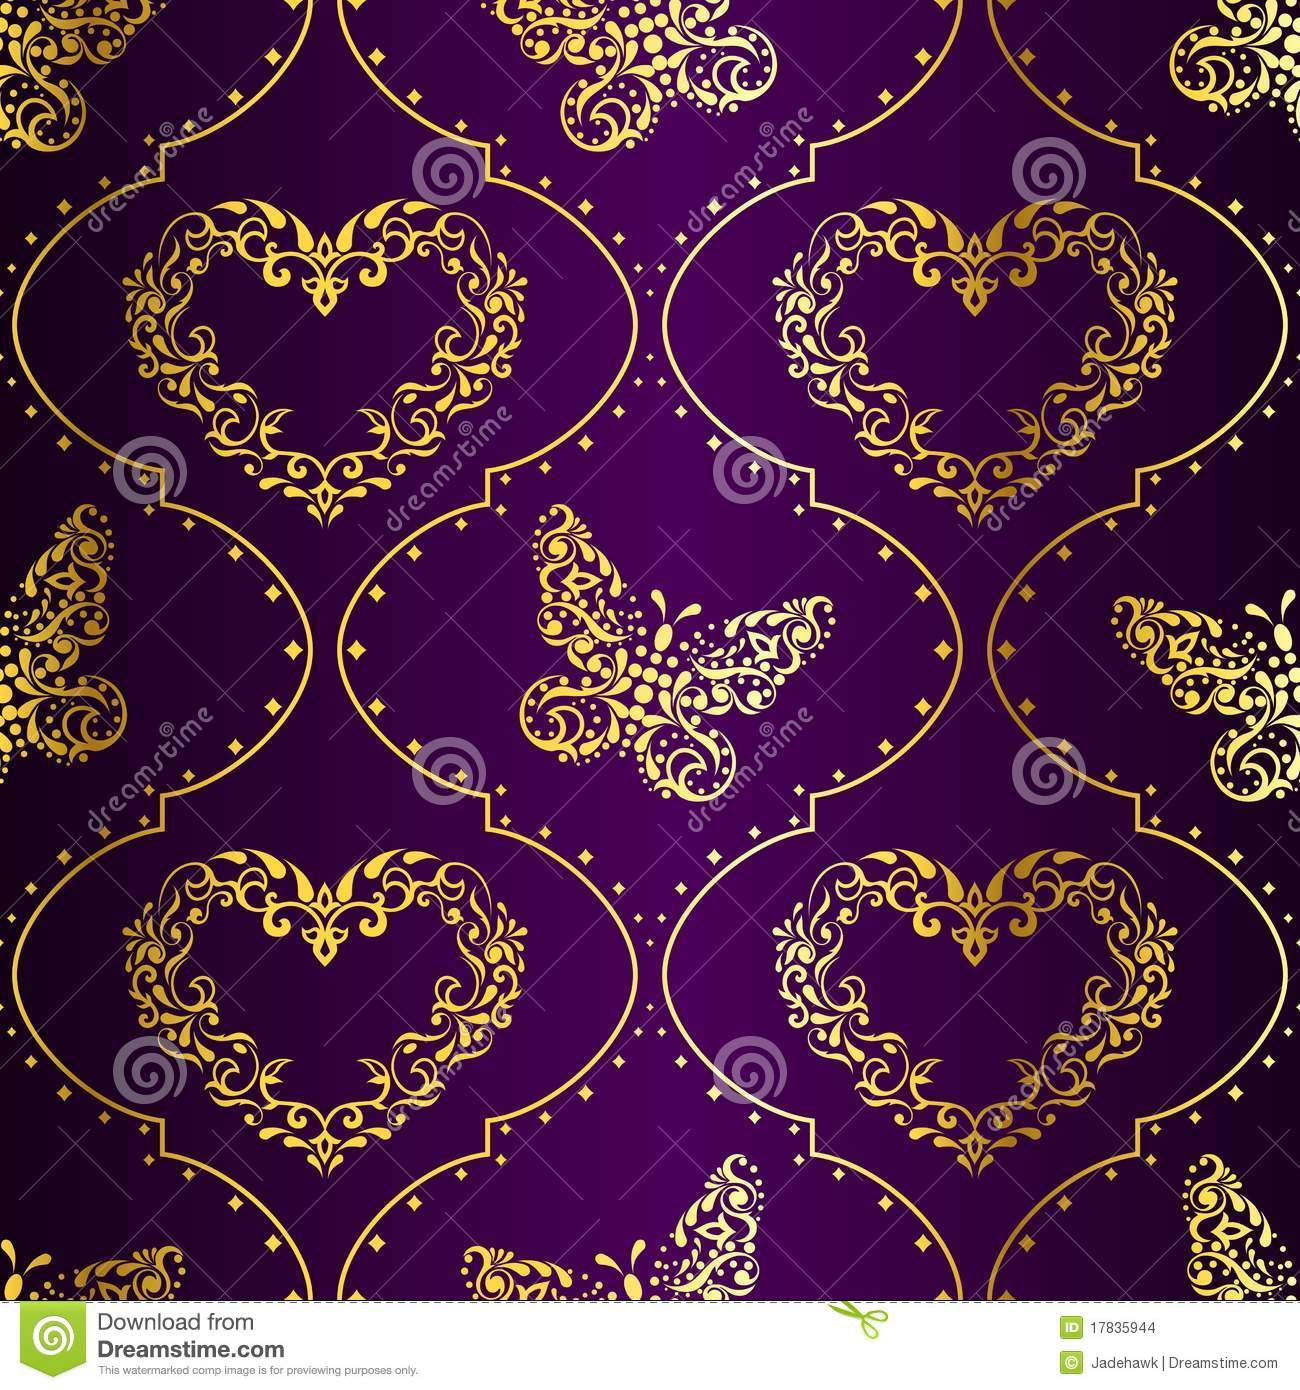 15 Purple And Gold Background Design Images  Purple And. Kitchen With Dark Cabinets. Kitchen Cabinets Layout Ideas. Kitchener Wine Cabinets. Redoing Oak Kitchen Cabinets. Crown Moulding Ideas For Kitchen Cabinets. Kitchen Cabinet Door Paint. 42 Inch Wide Kitchen Cabinets. Kitchen Paint Colors Oak Cabinets